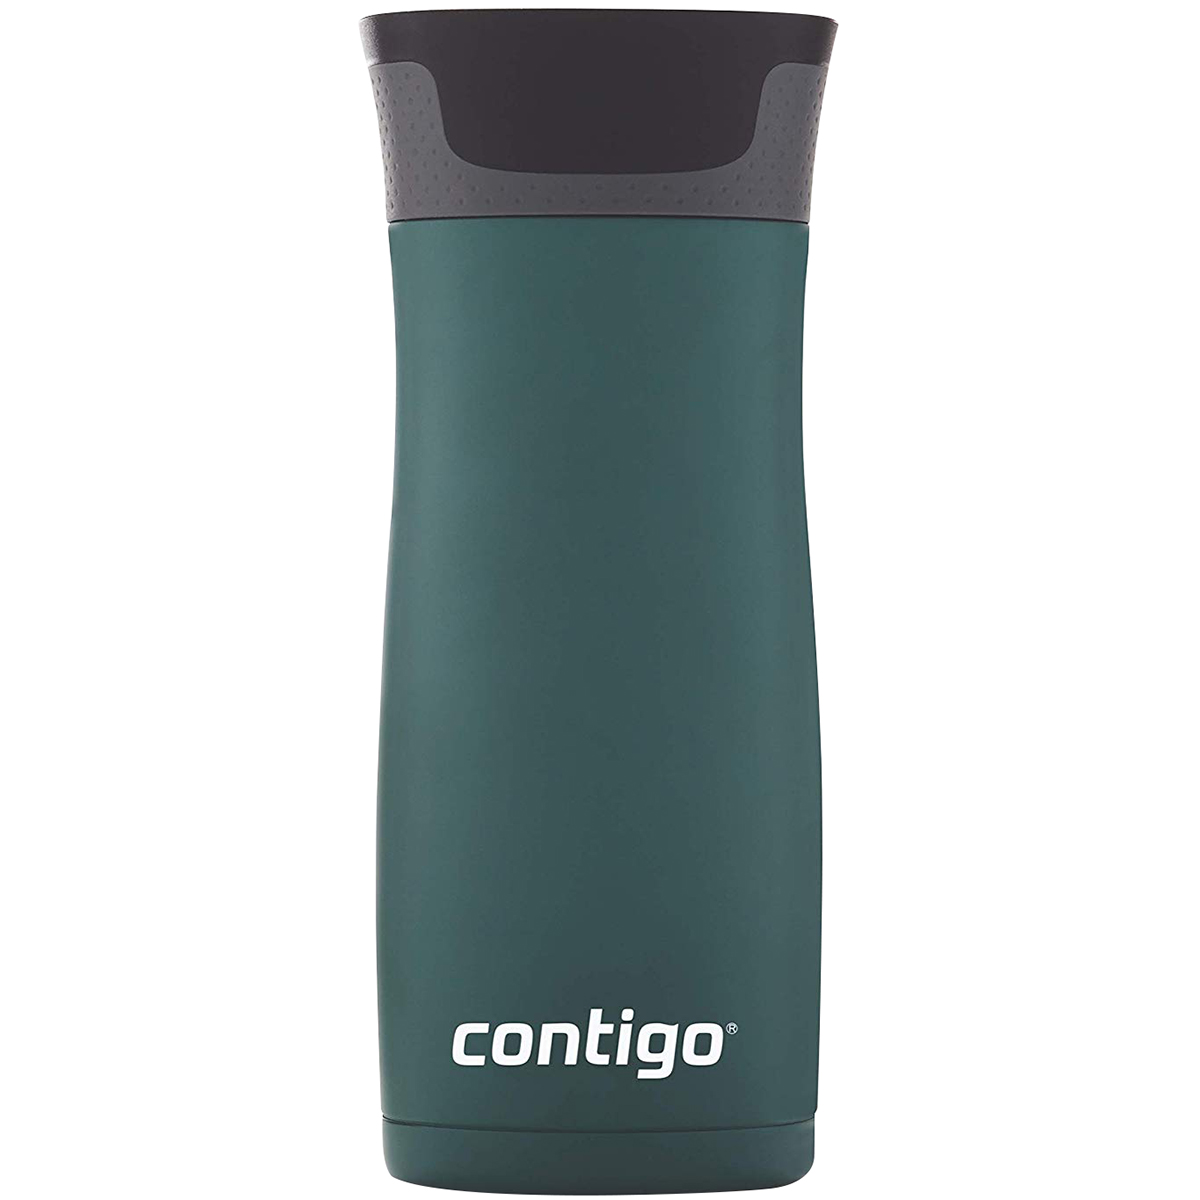 Contigo-16-oz-West-Loop-2-0-AutoSeal-Insulated-Stainless-Steel-Travel-Mug miniatura 19